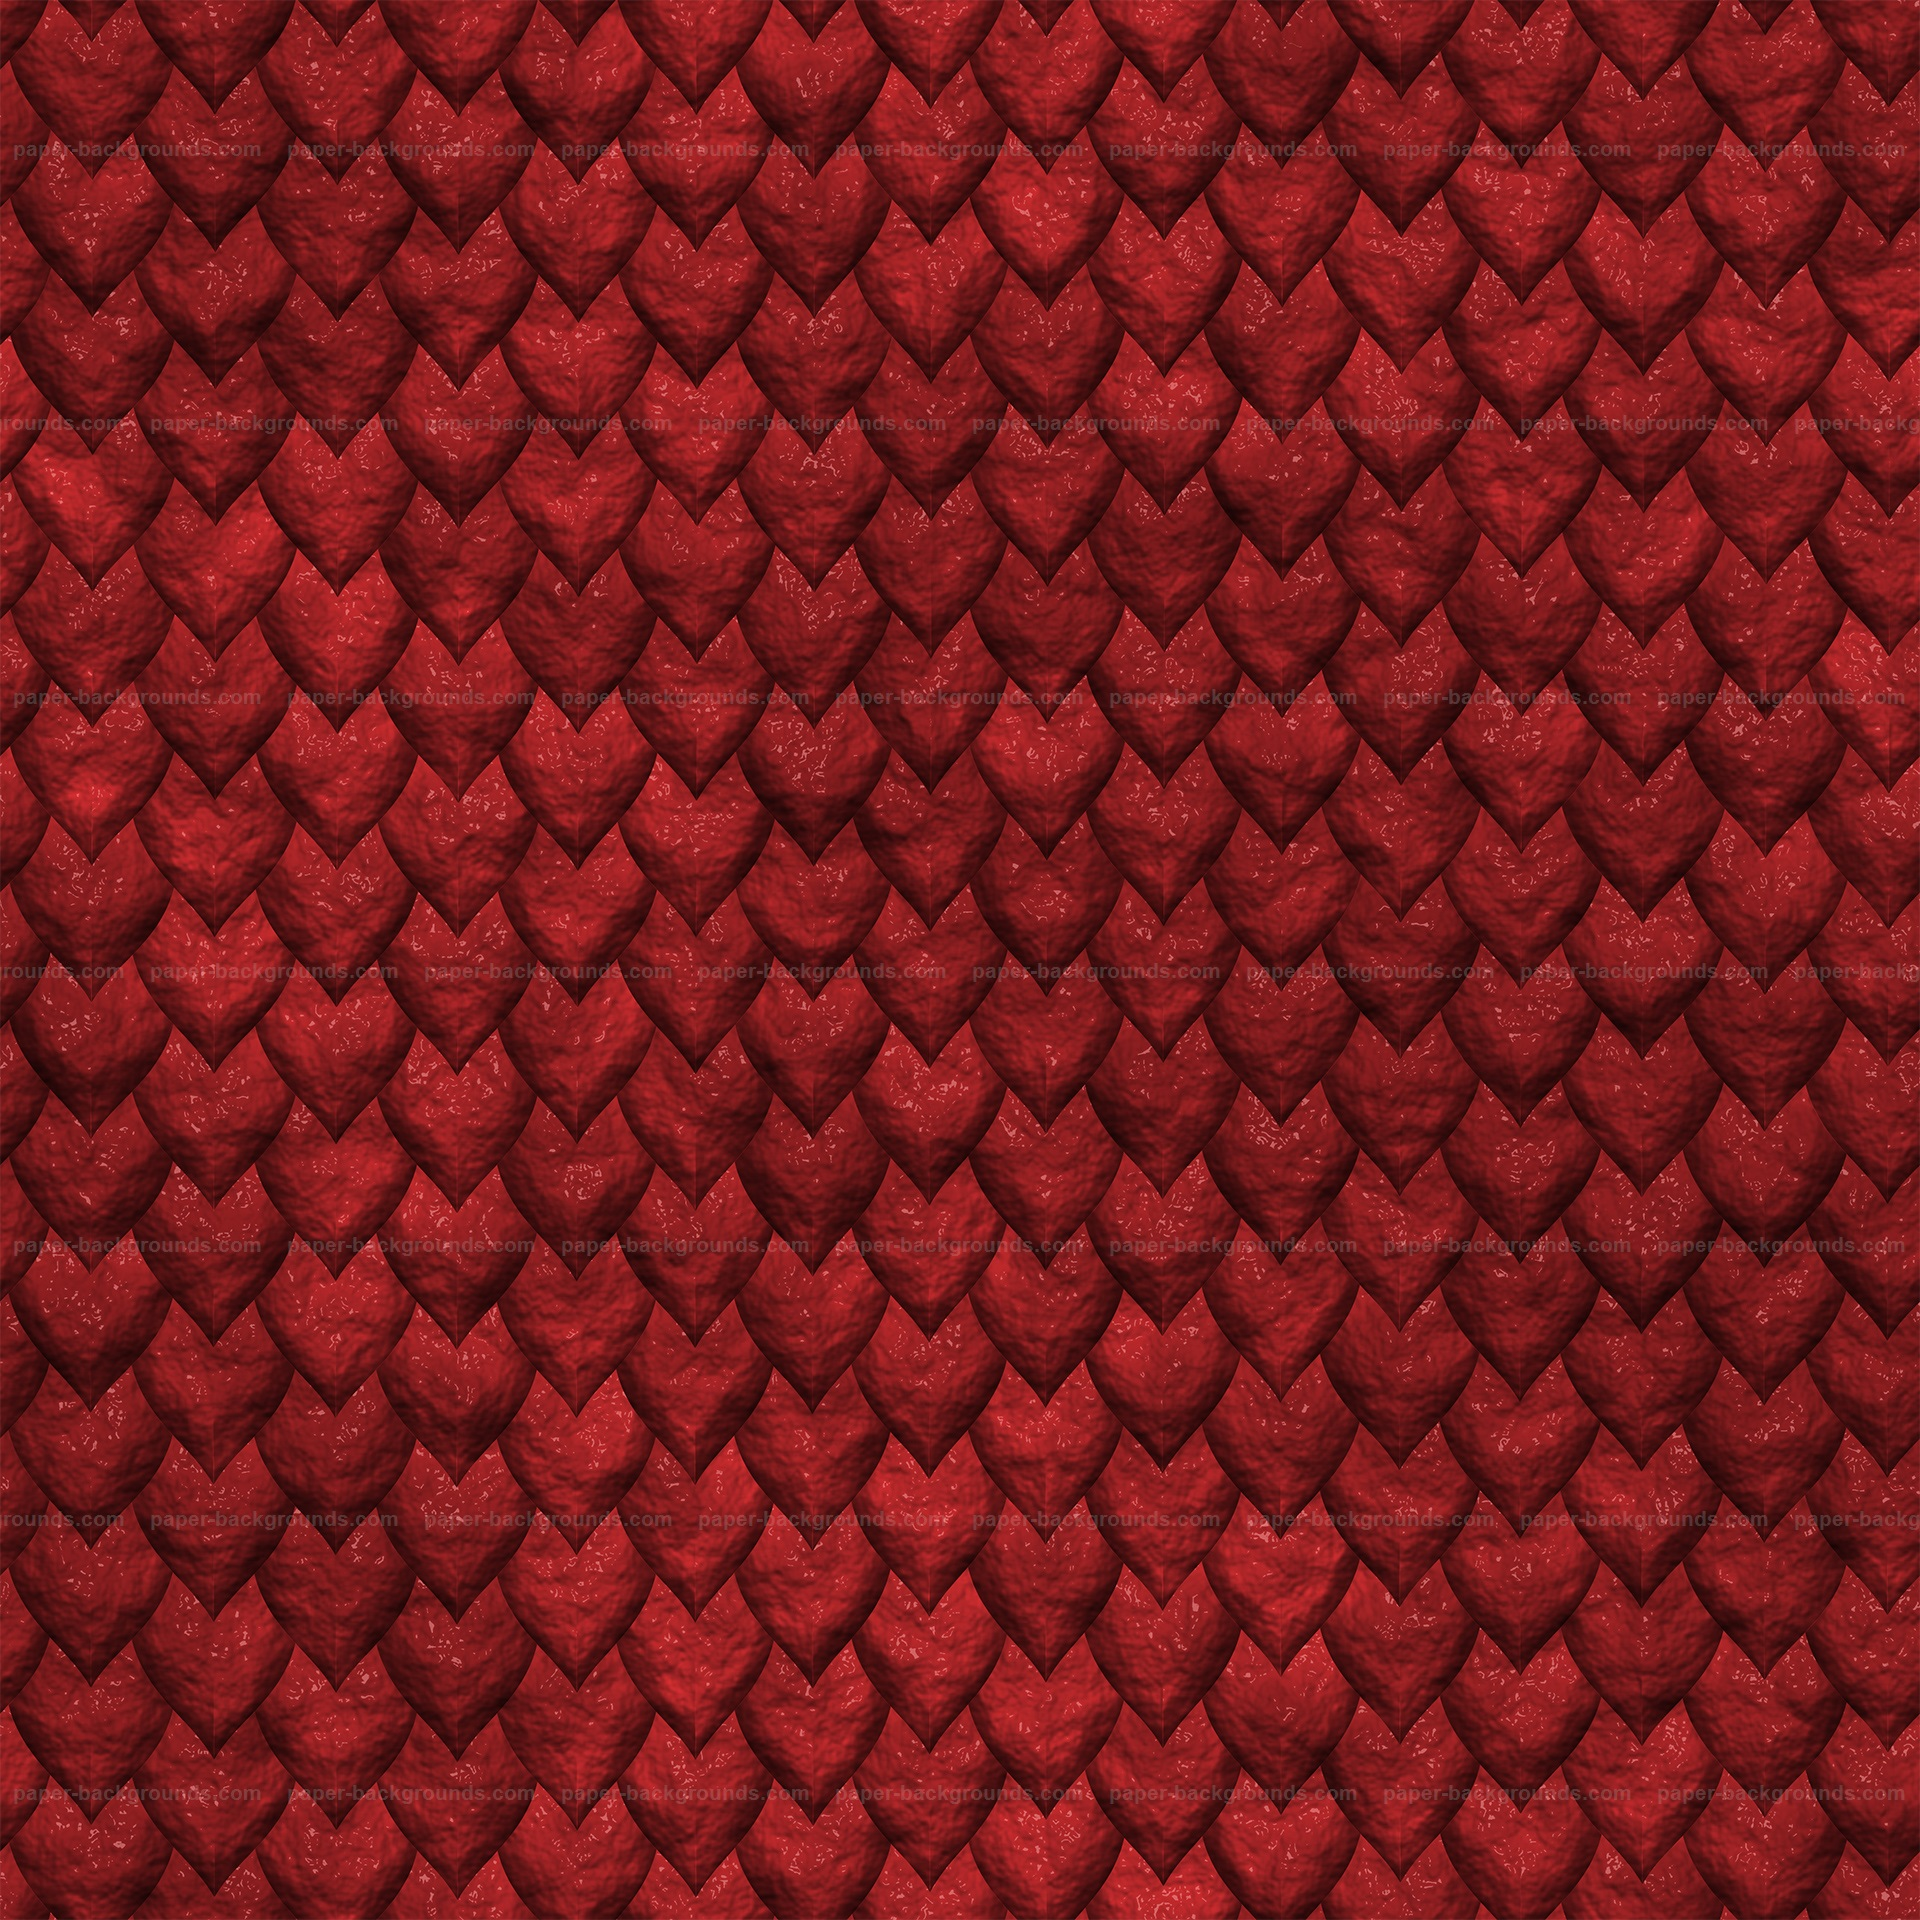 Seamless Red Dragon Reptile Skin Texture HD